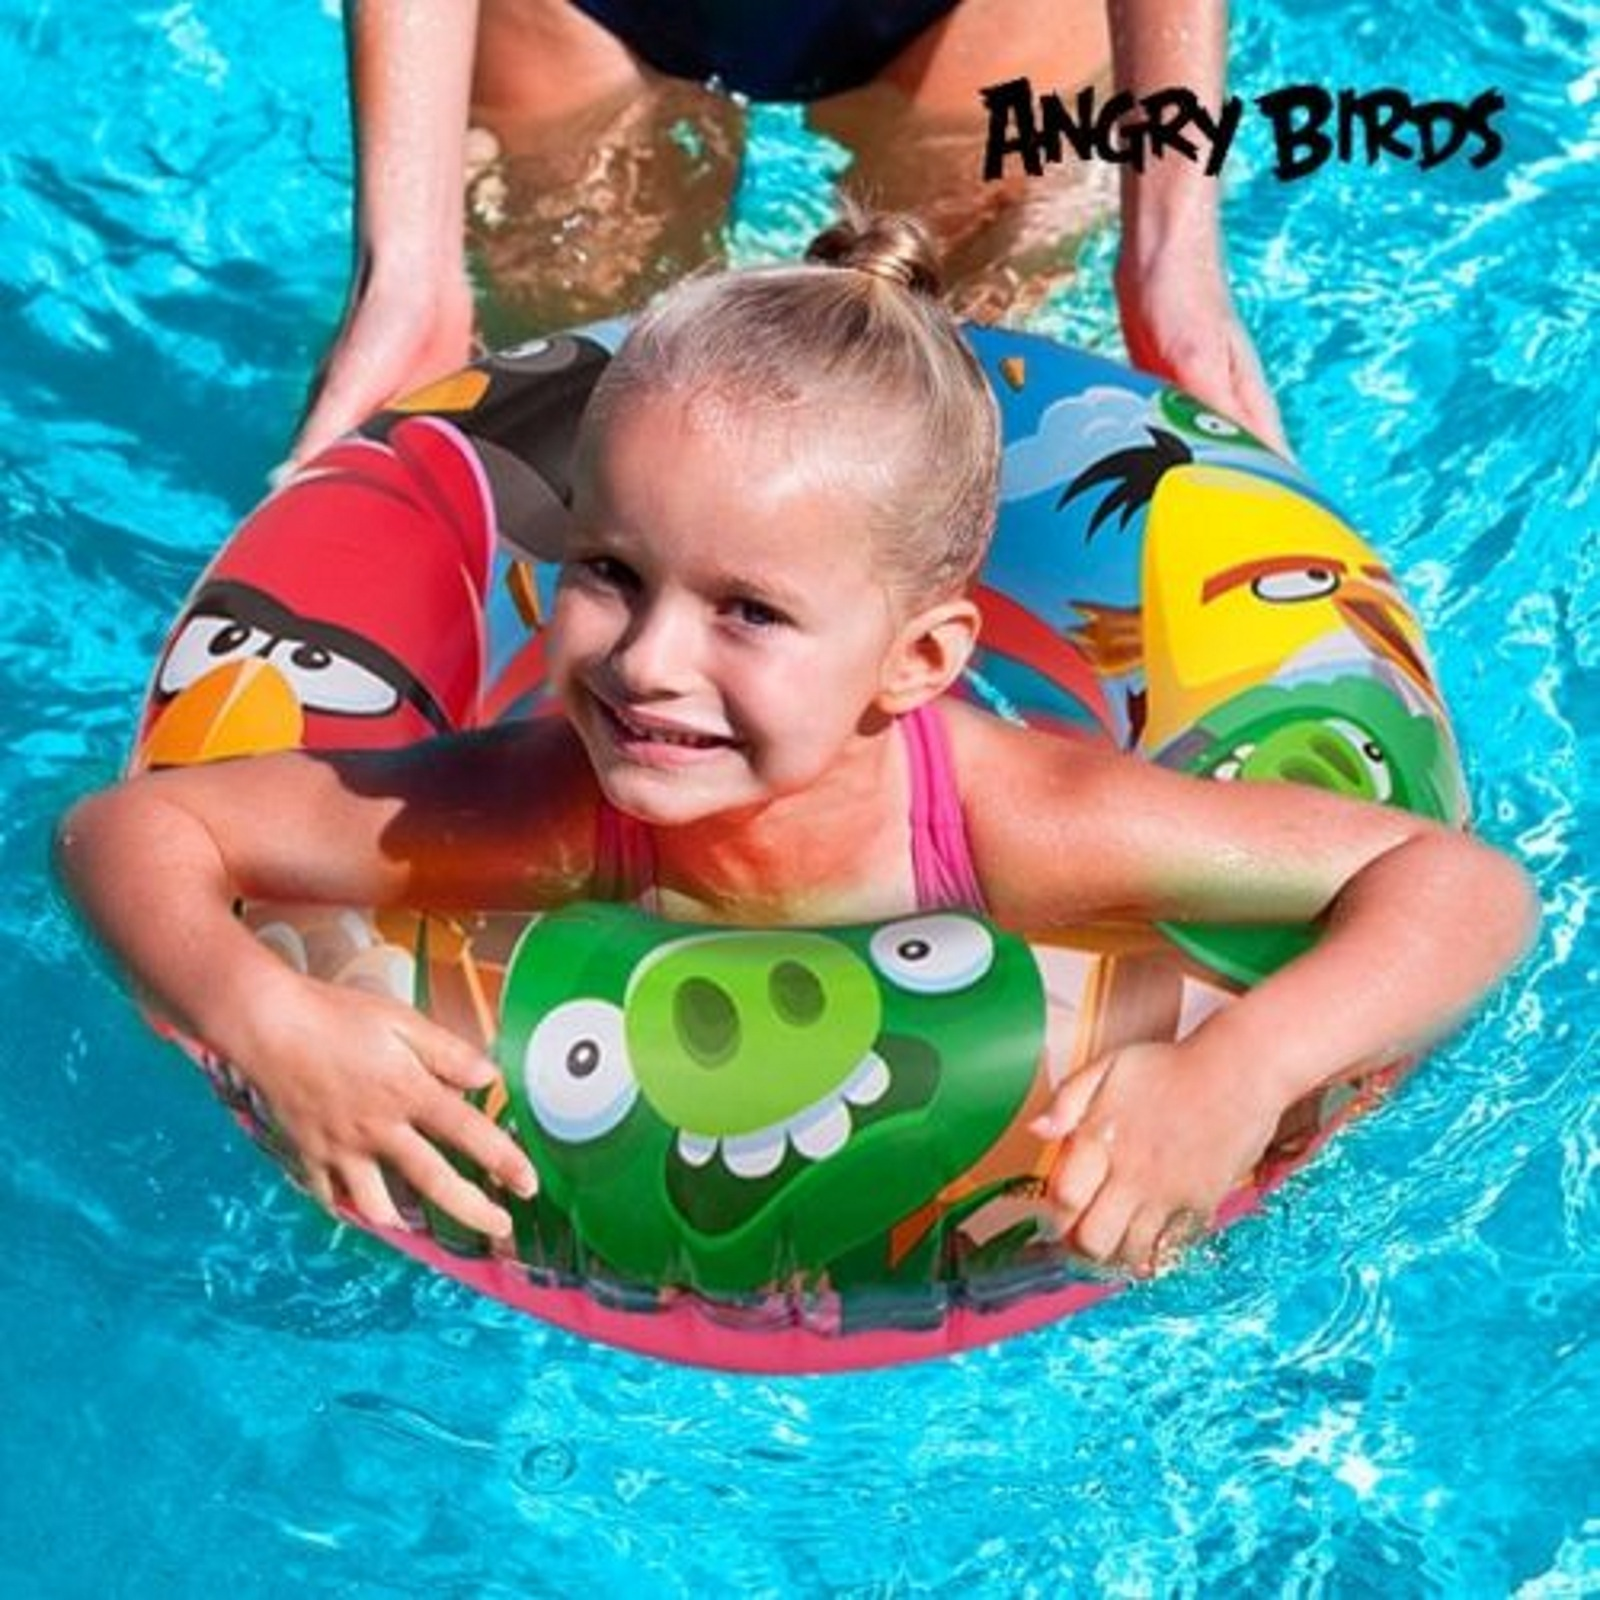 Product details of new inflatable floating swim ring kids children toy - Bestway Angry Birds Swim Ring